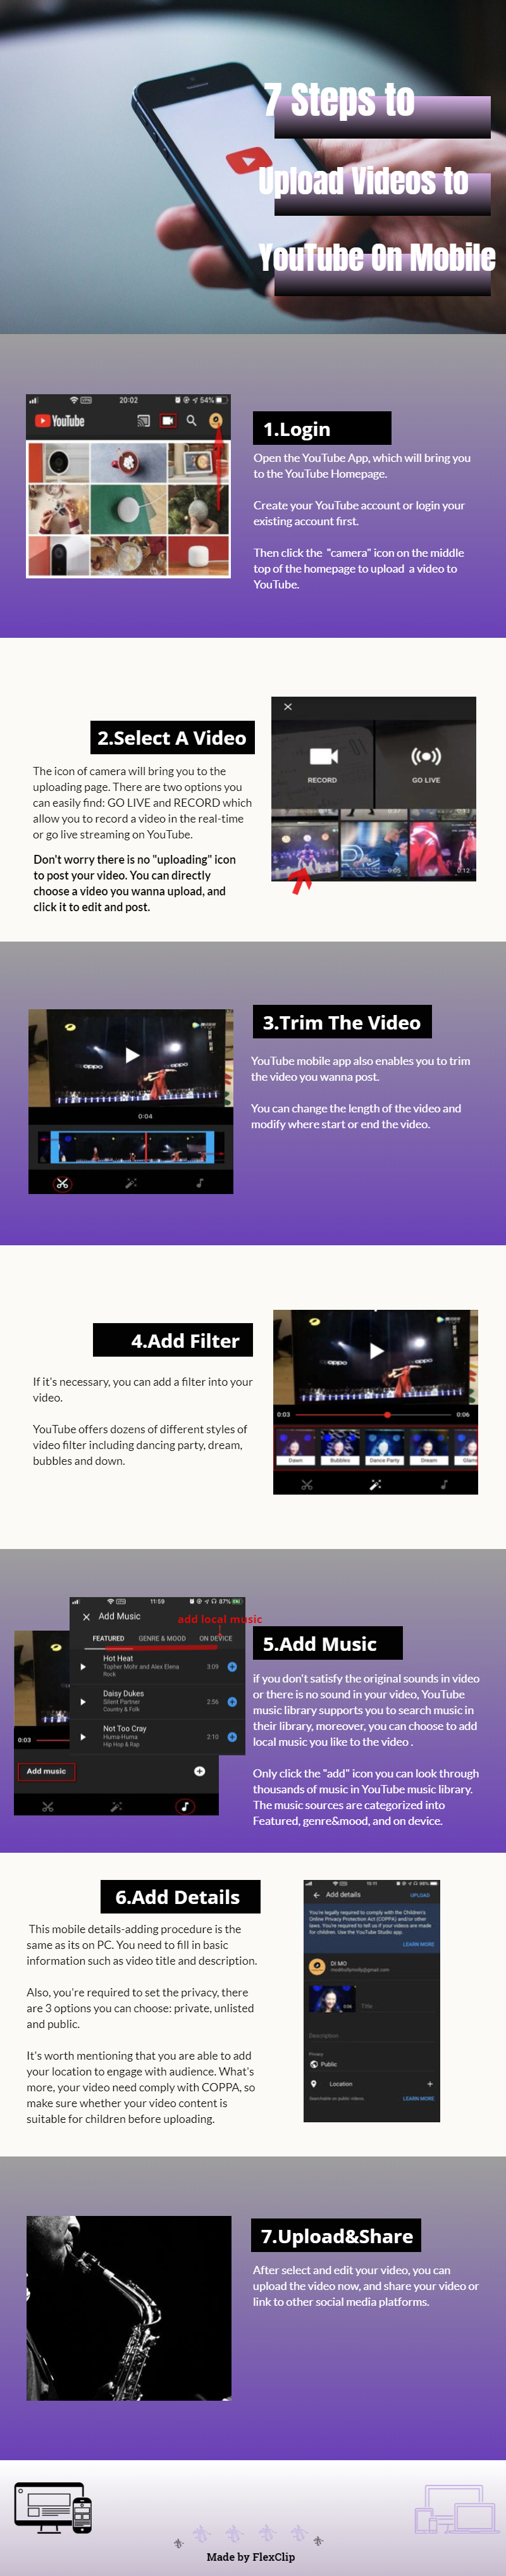 upload-a-video-to-youtube-on-mobile-infographic